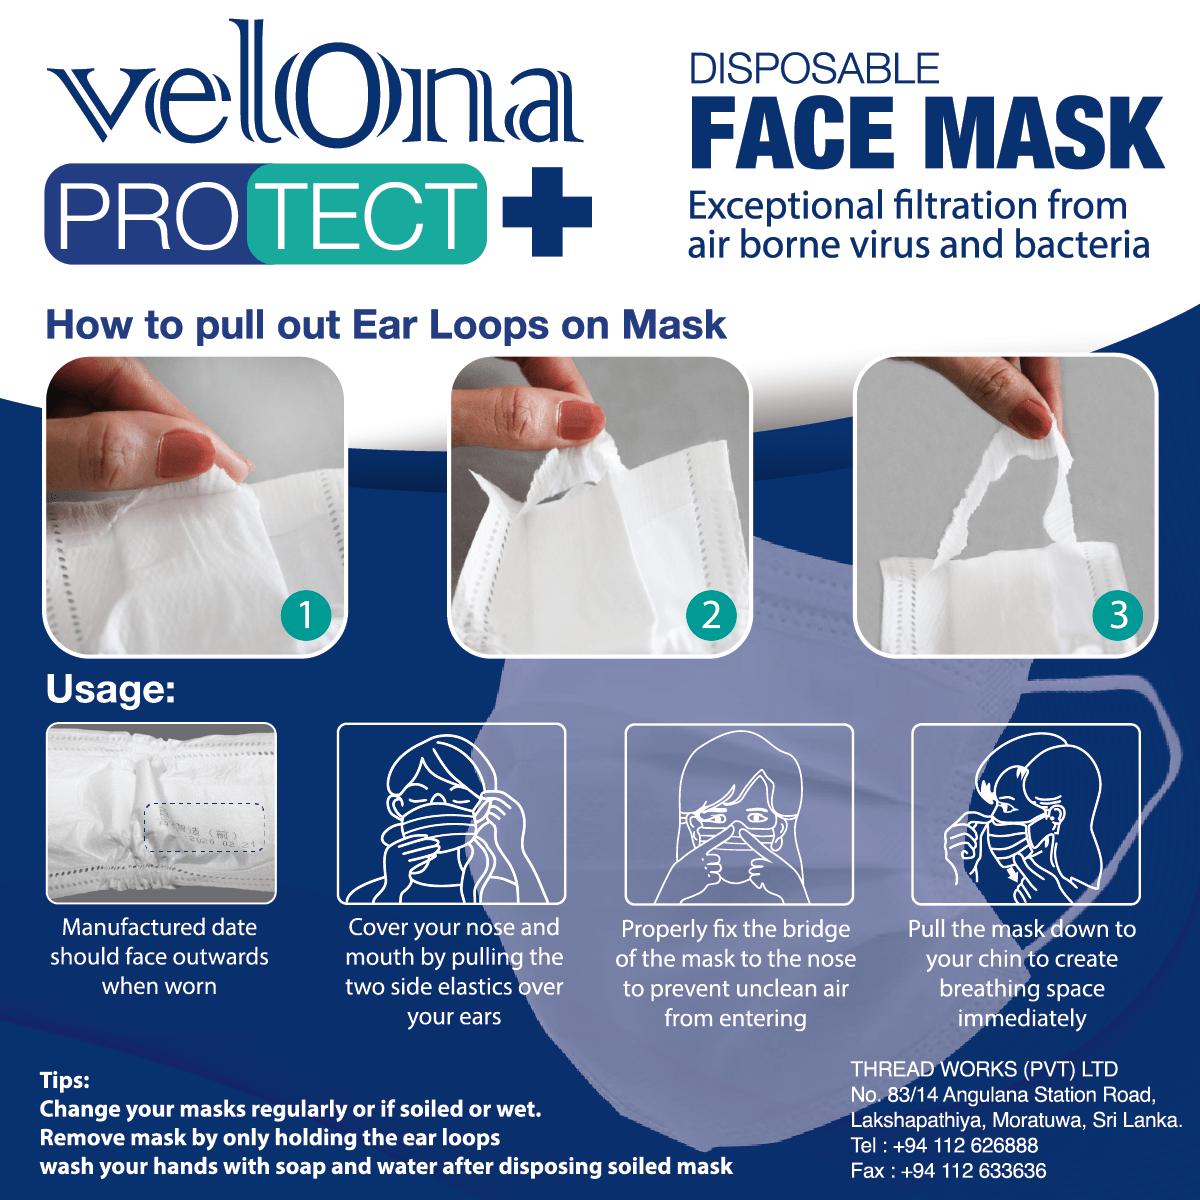 Velona Protect Disposable Mask